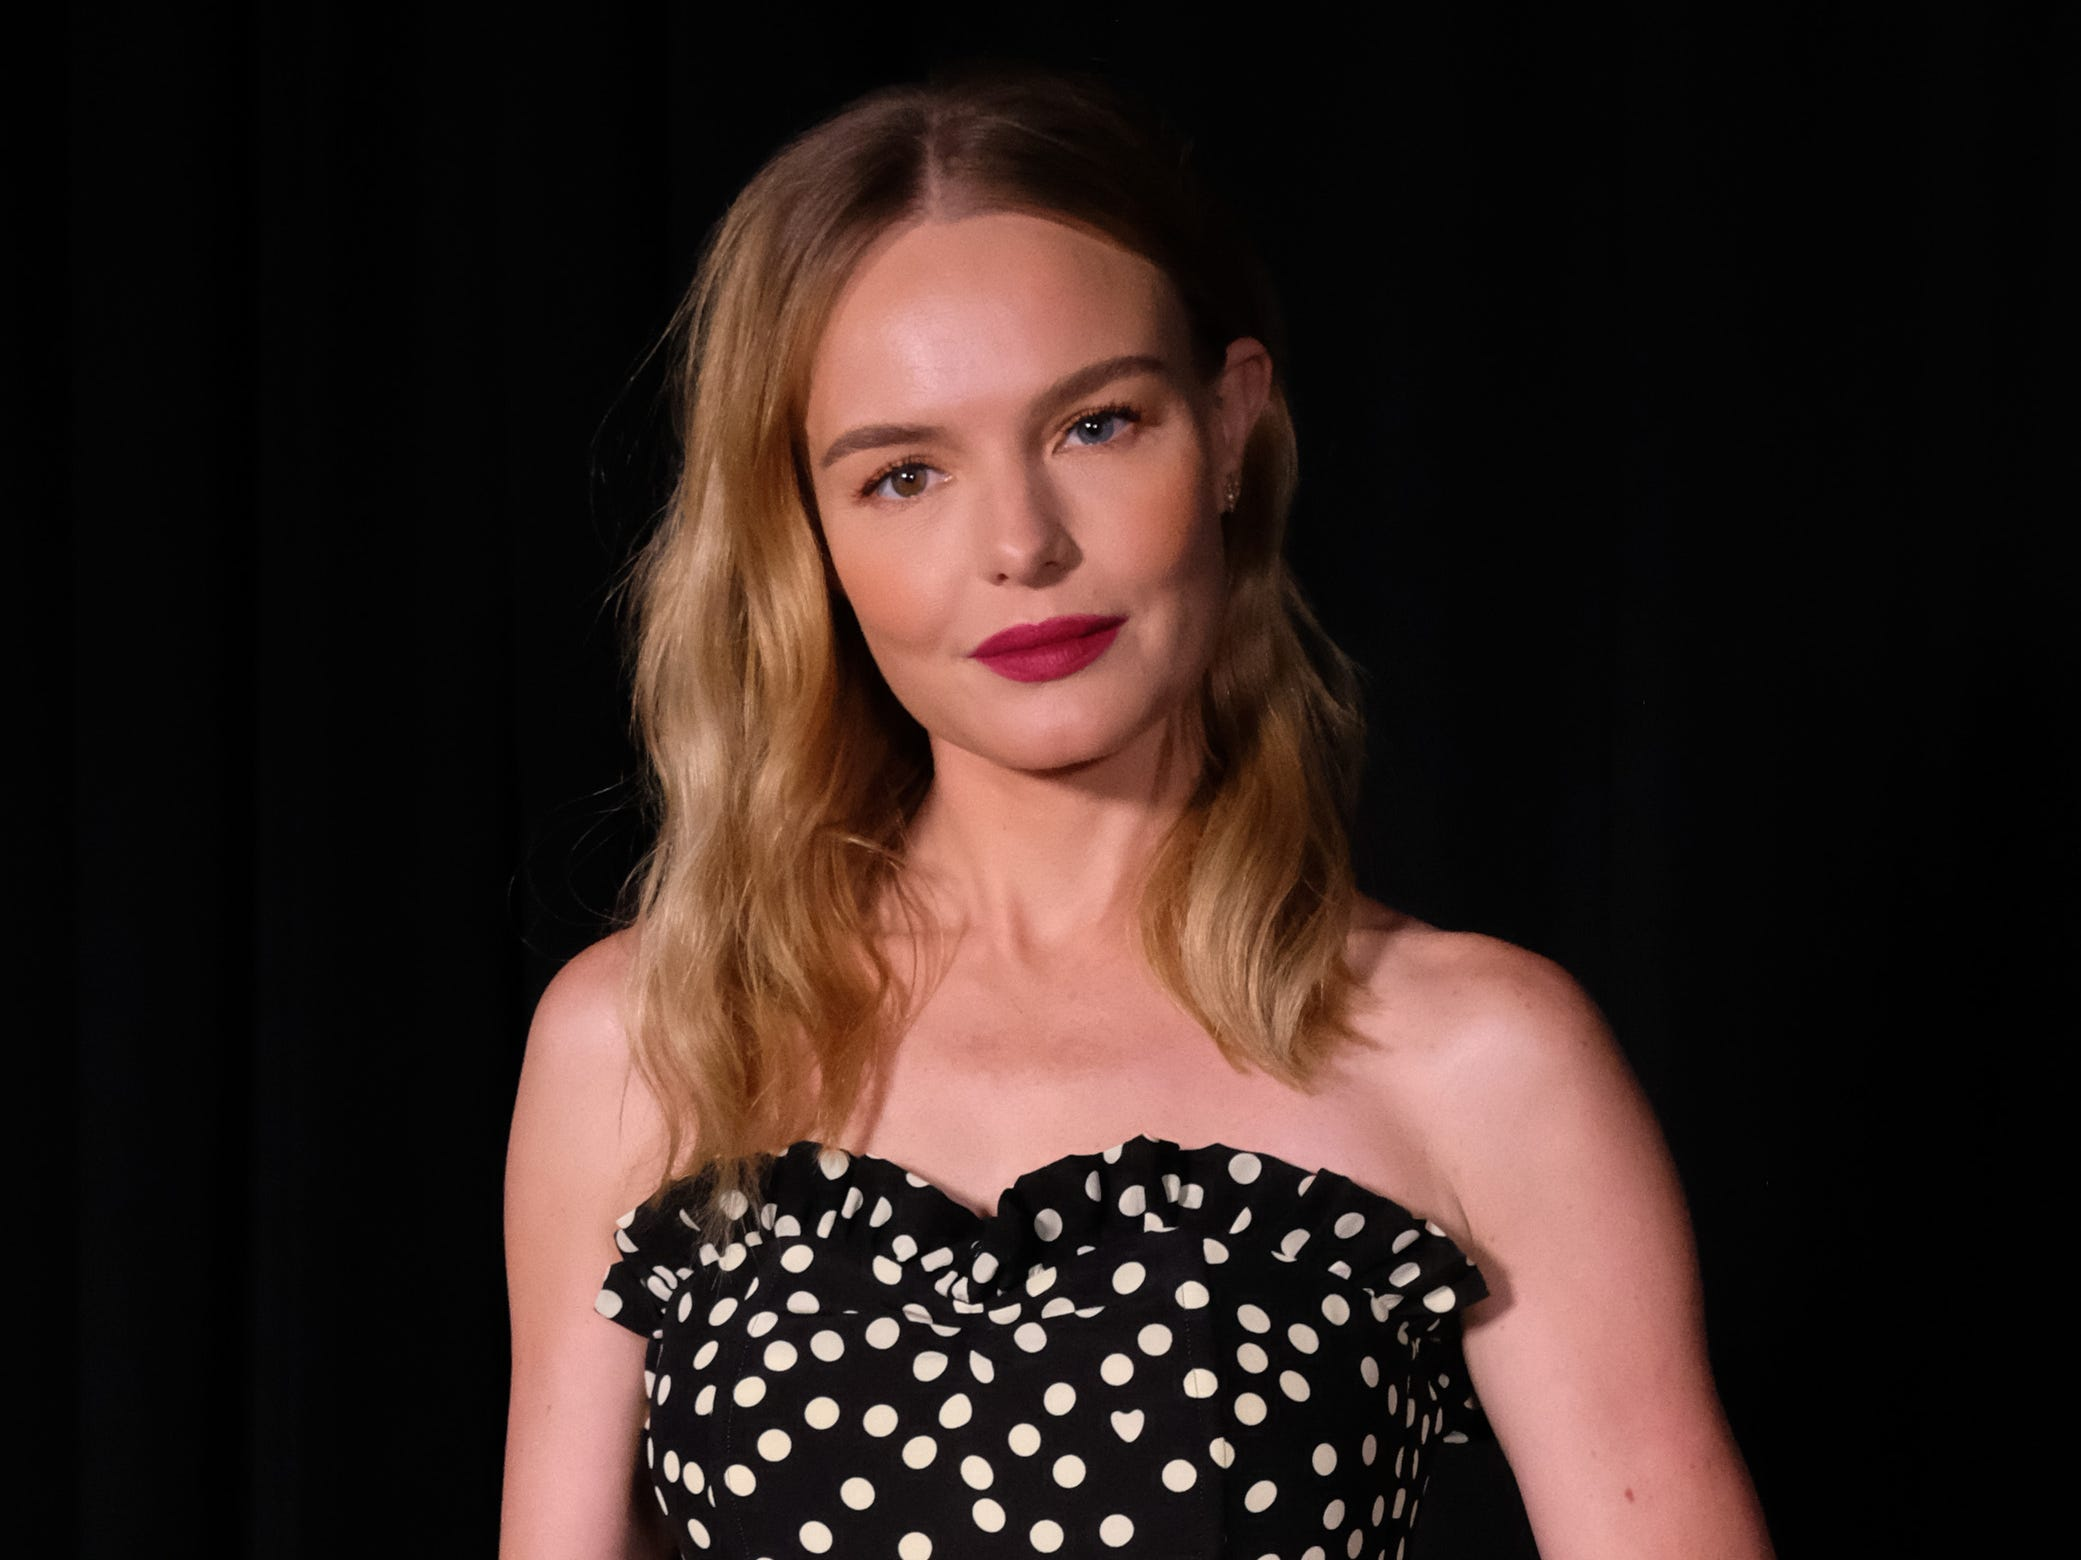 NEW YORK, NY - SEPTEMBER 09:  Kate Bosworth poses backstage at Escada for New York Fashion Week on September 9, 2018 in New York City.  (Photo by Nicholas Hunt/Getty Images) ORG XMIT: 775216379 ORIG FILE ID: 1029945454